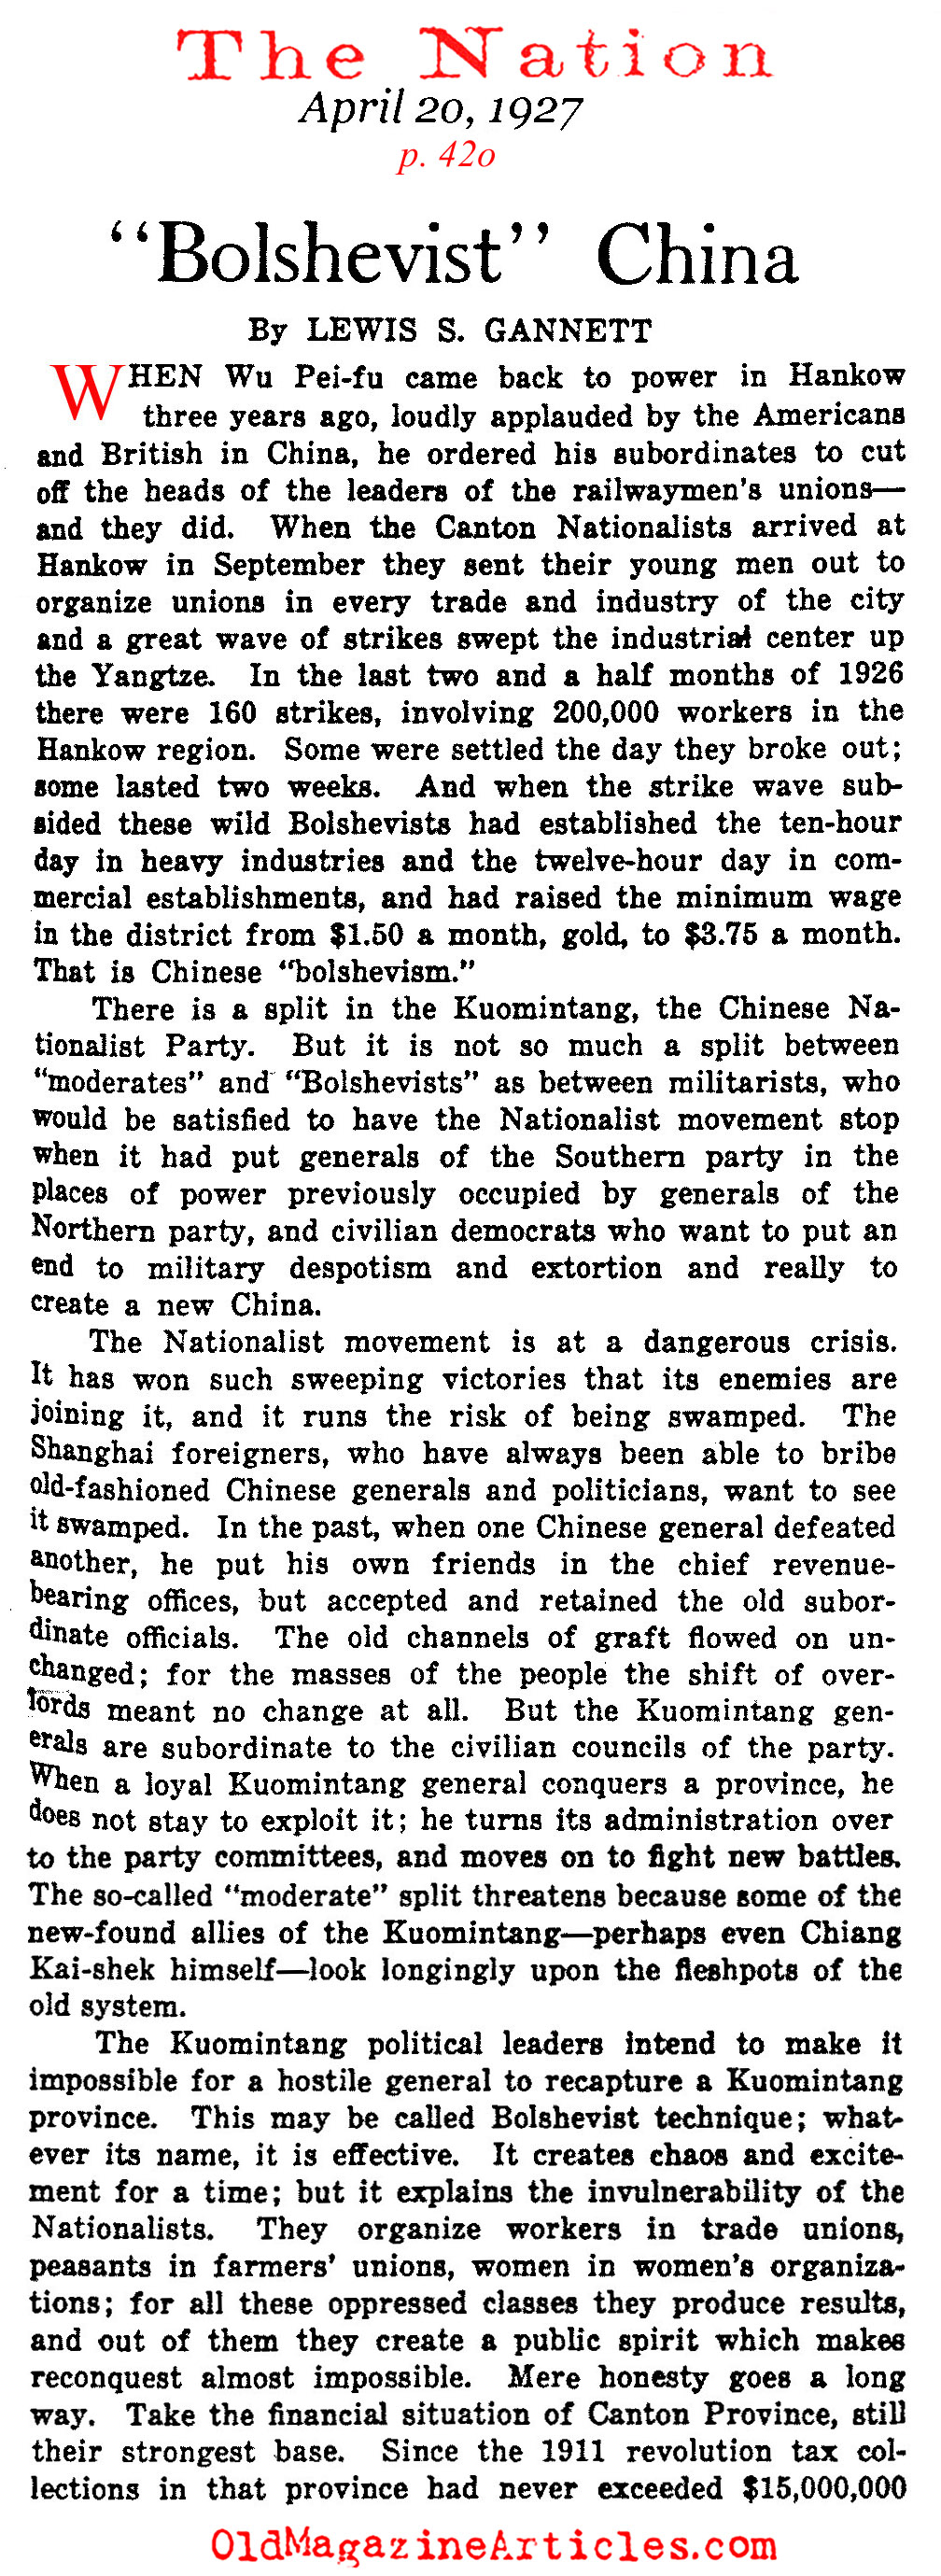 The Roots of Communist China (The Nation, 1927)